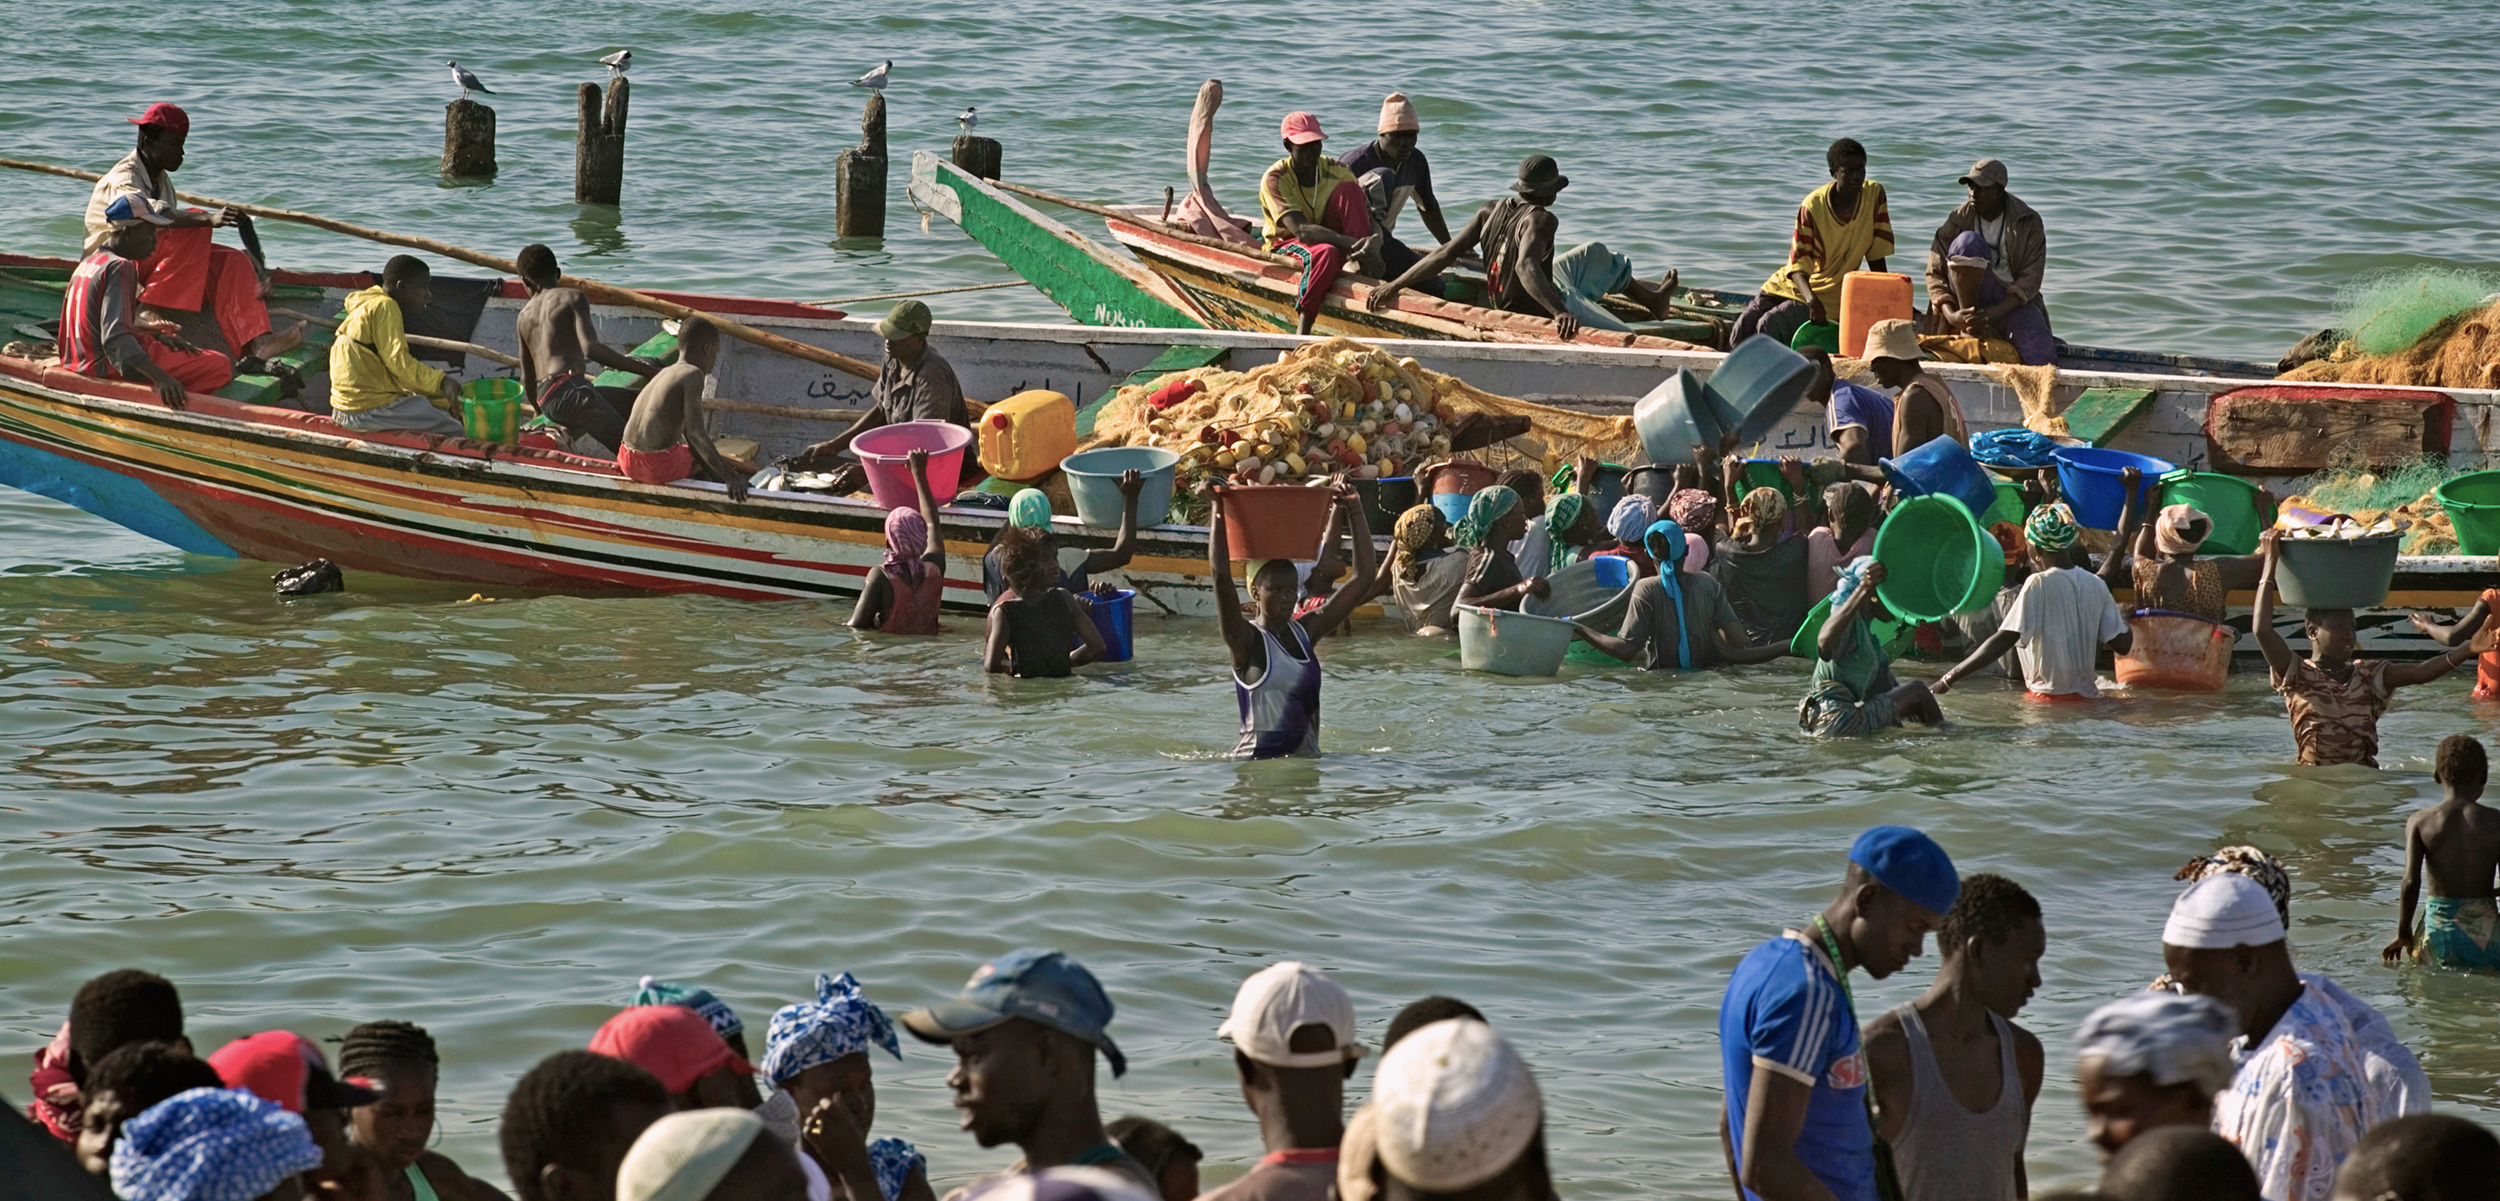 Gambian fishermen are hoping an eco-label will help secure their livelihood. Photo by Jon Hicks/Corbis